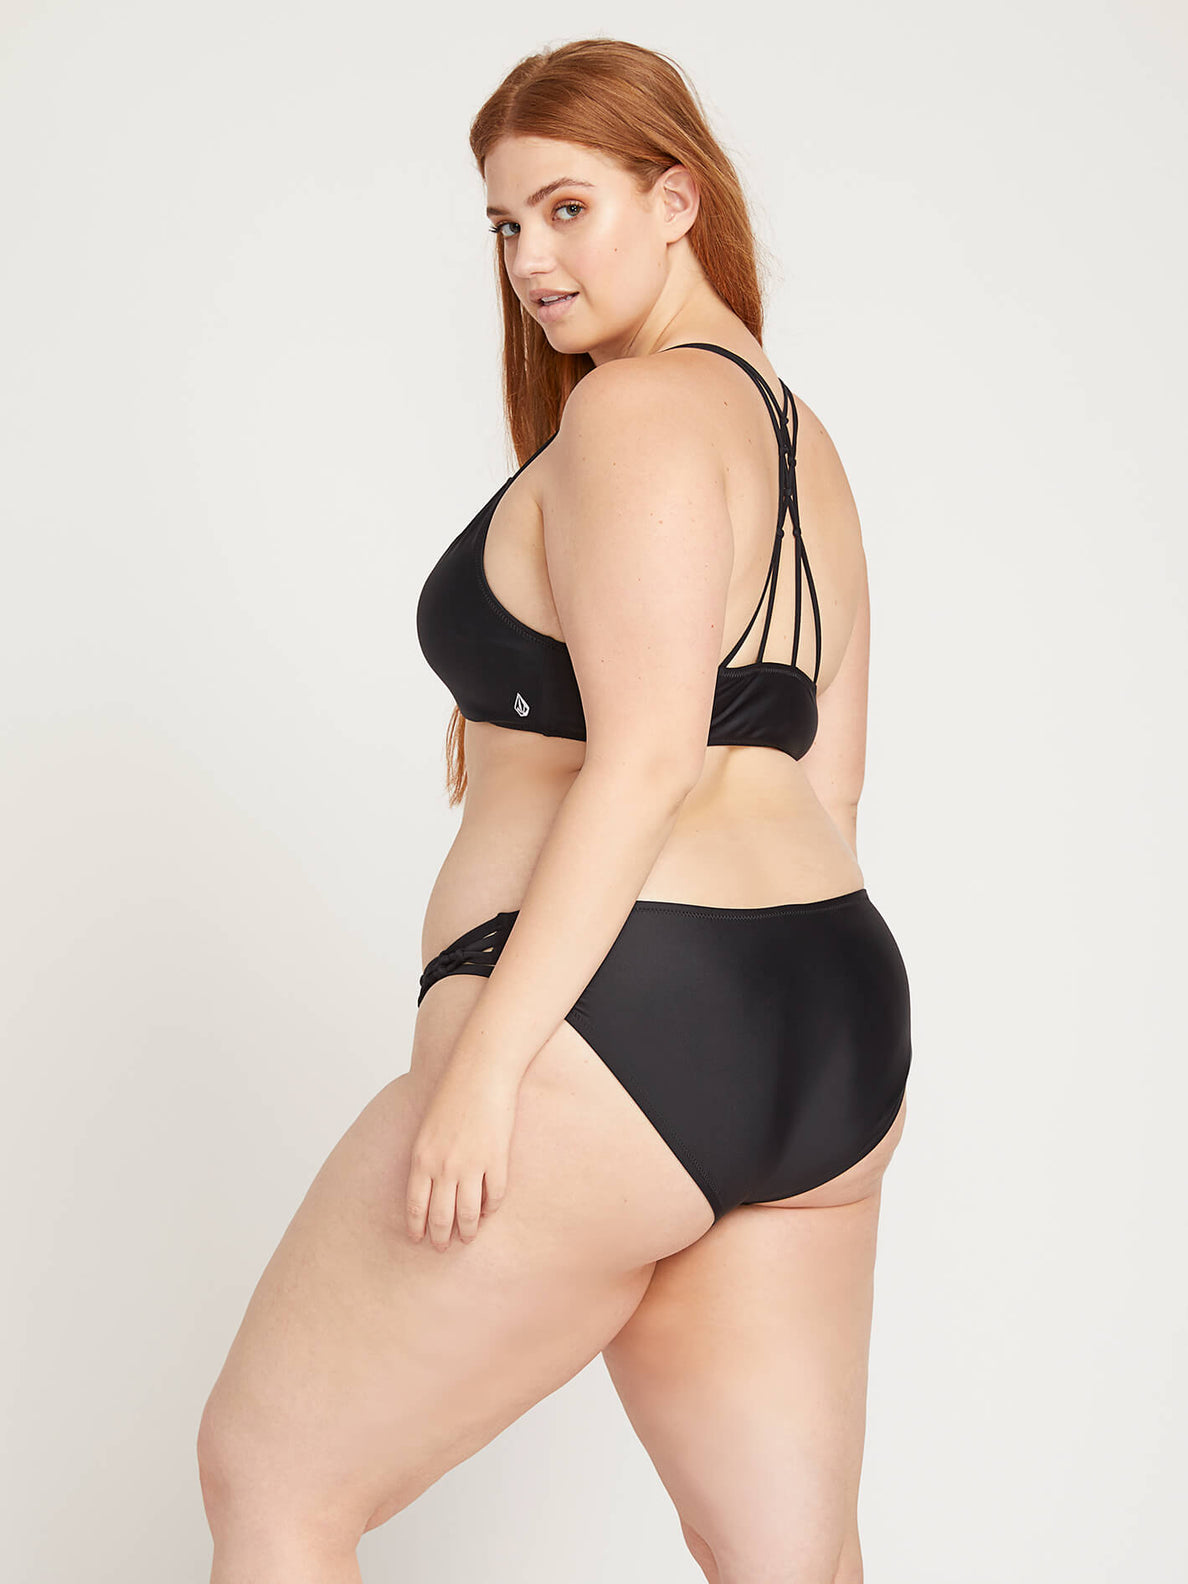 Simply Solid Full Bottoms In Black, Second Alternate Plus Size View